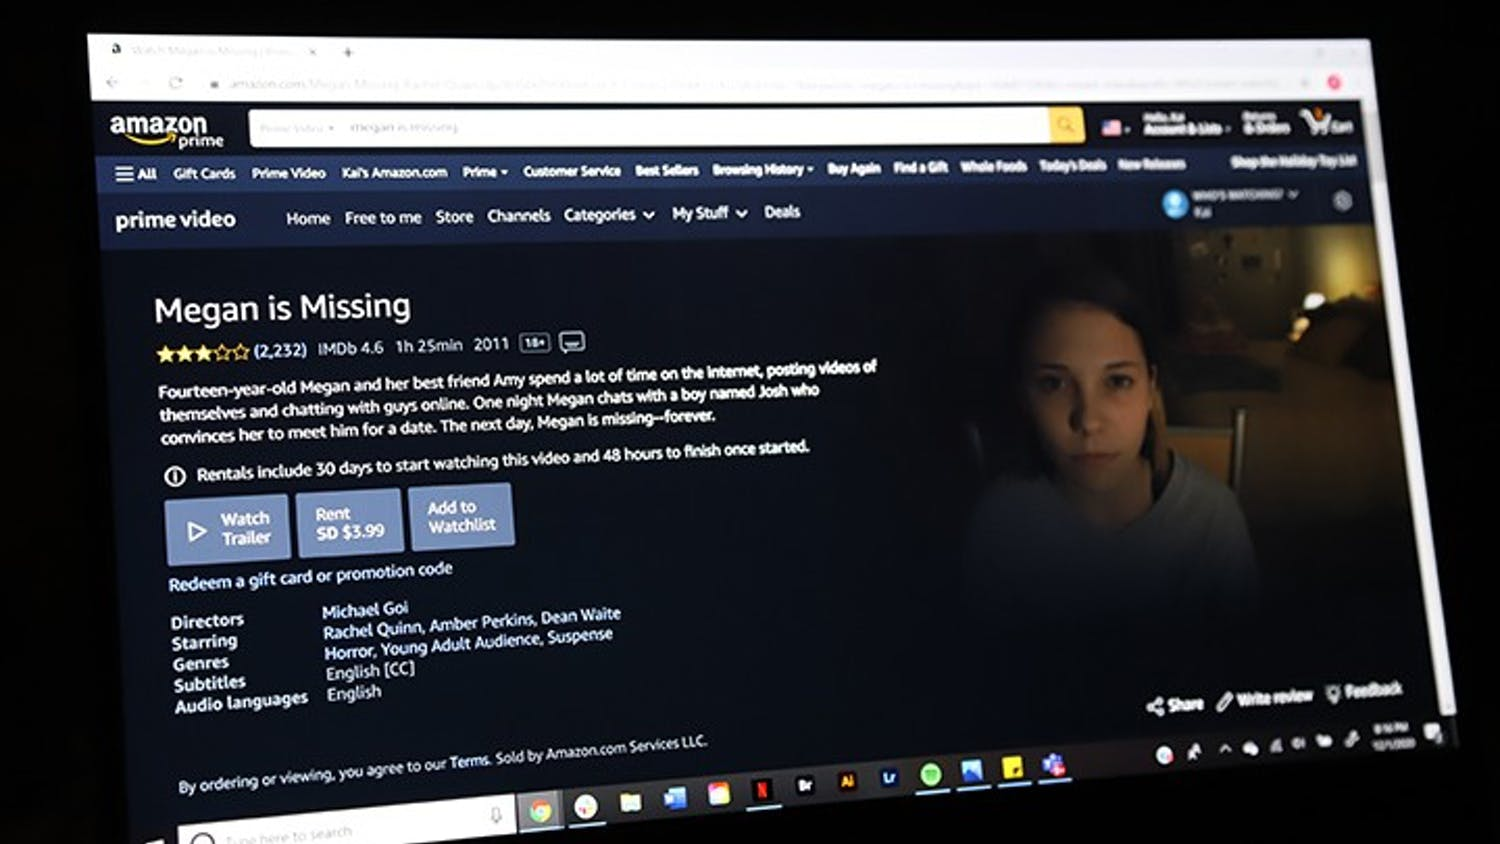 """""""Megan Is Missing"""" is a horror/thriller about a 14-year-old girl who goes missing when she meets a boy for a date. The movie is available on Amazon Video and YouTube."""